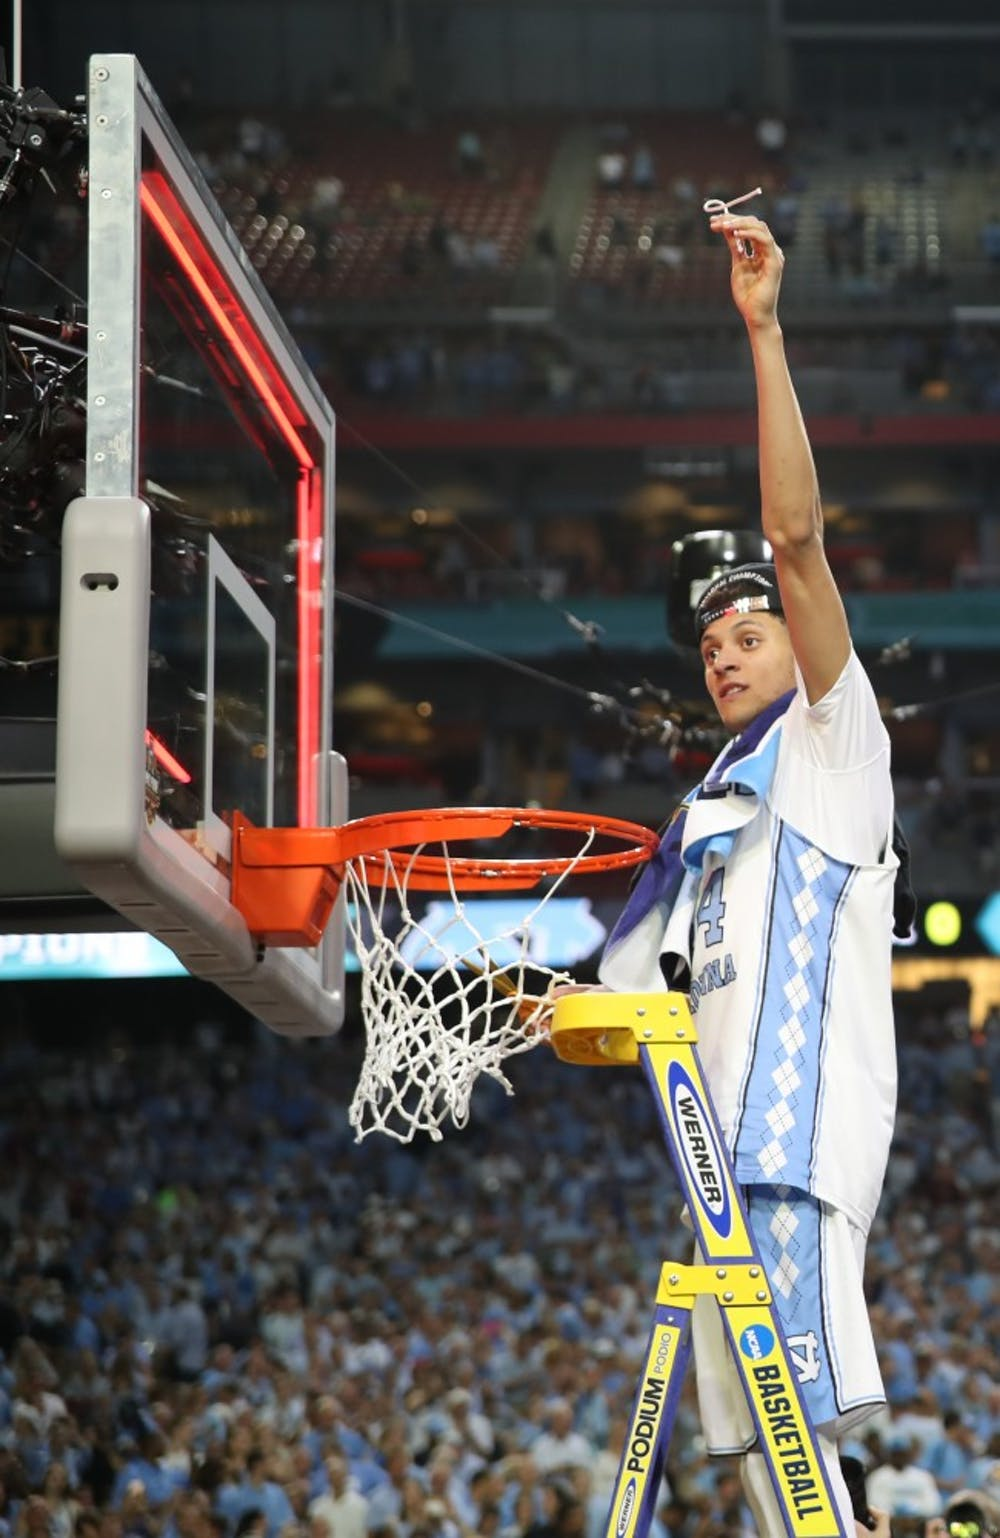 The UNC basketball players as 'Lord of the Rings' characters